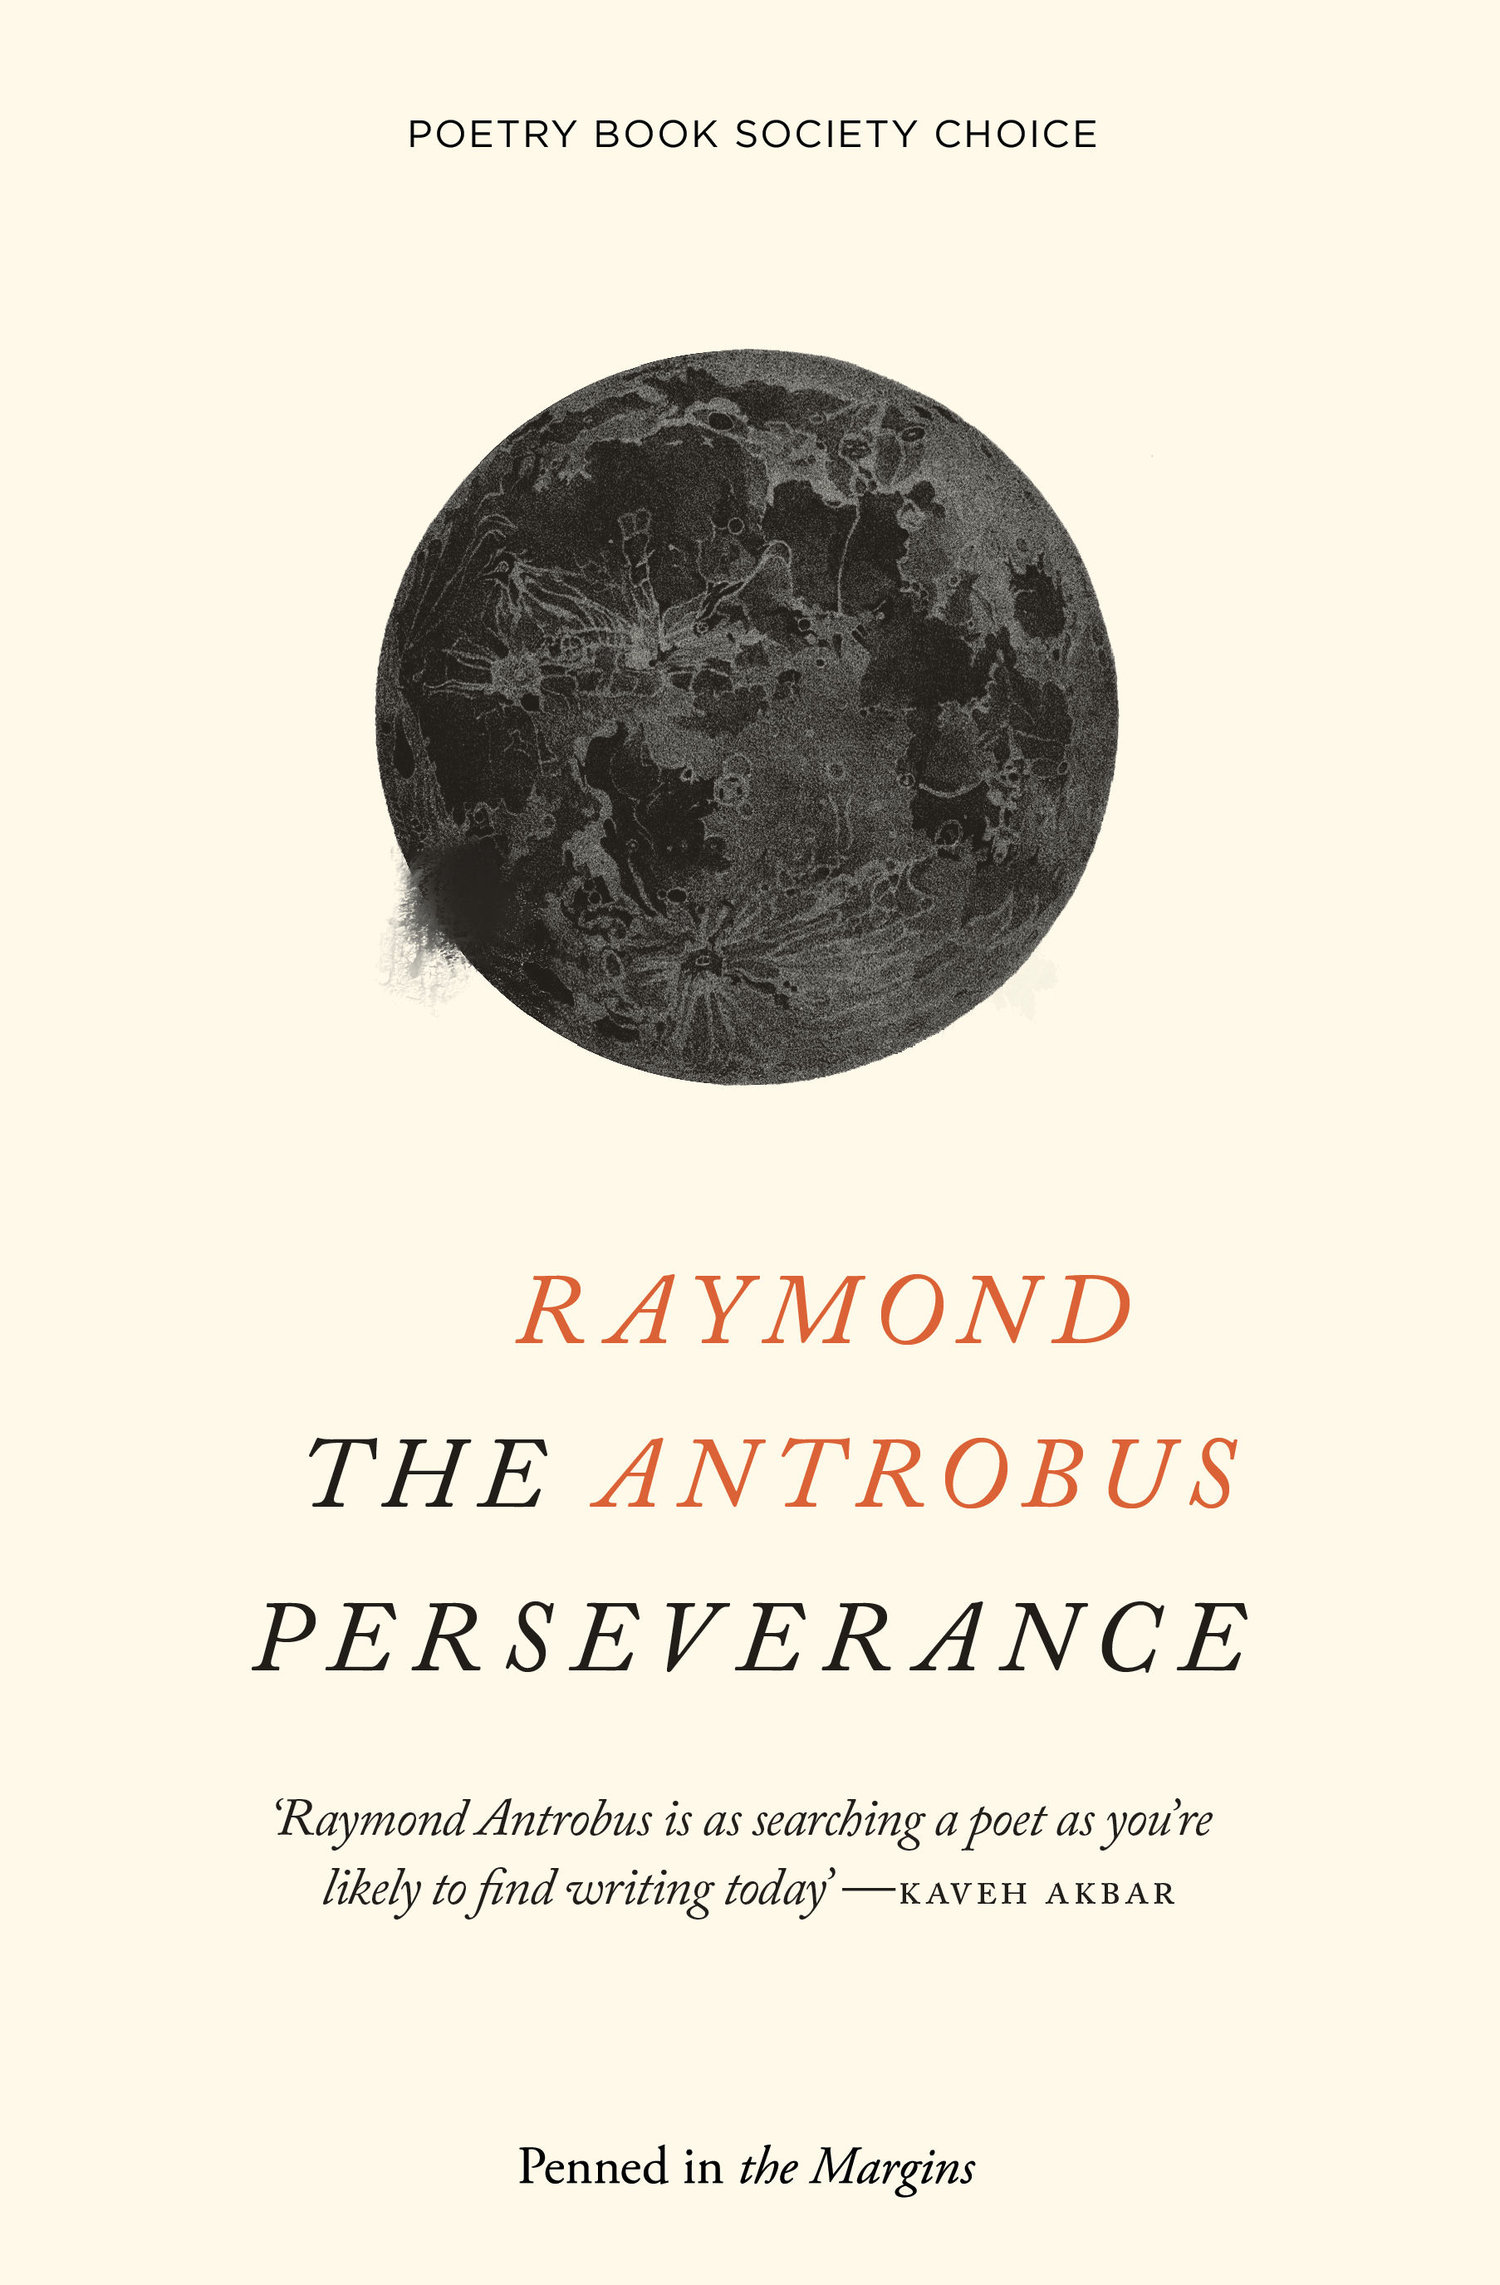 Theperseverance_frontcover_small